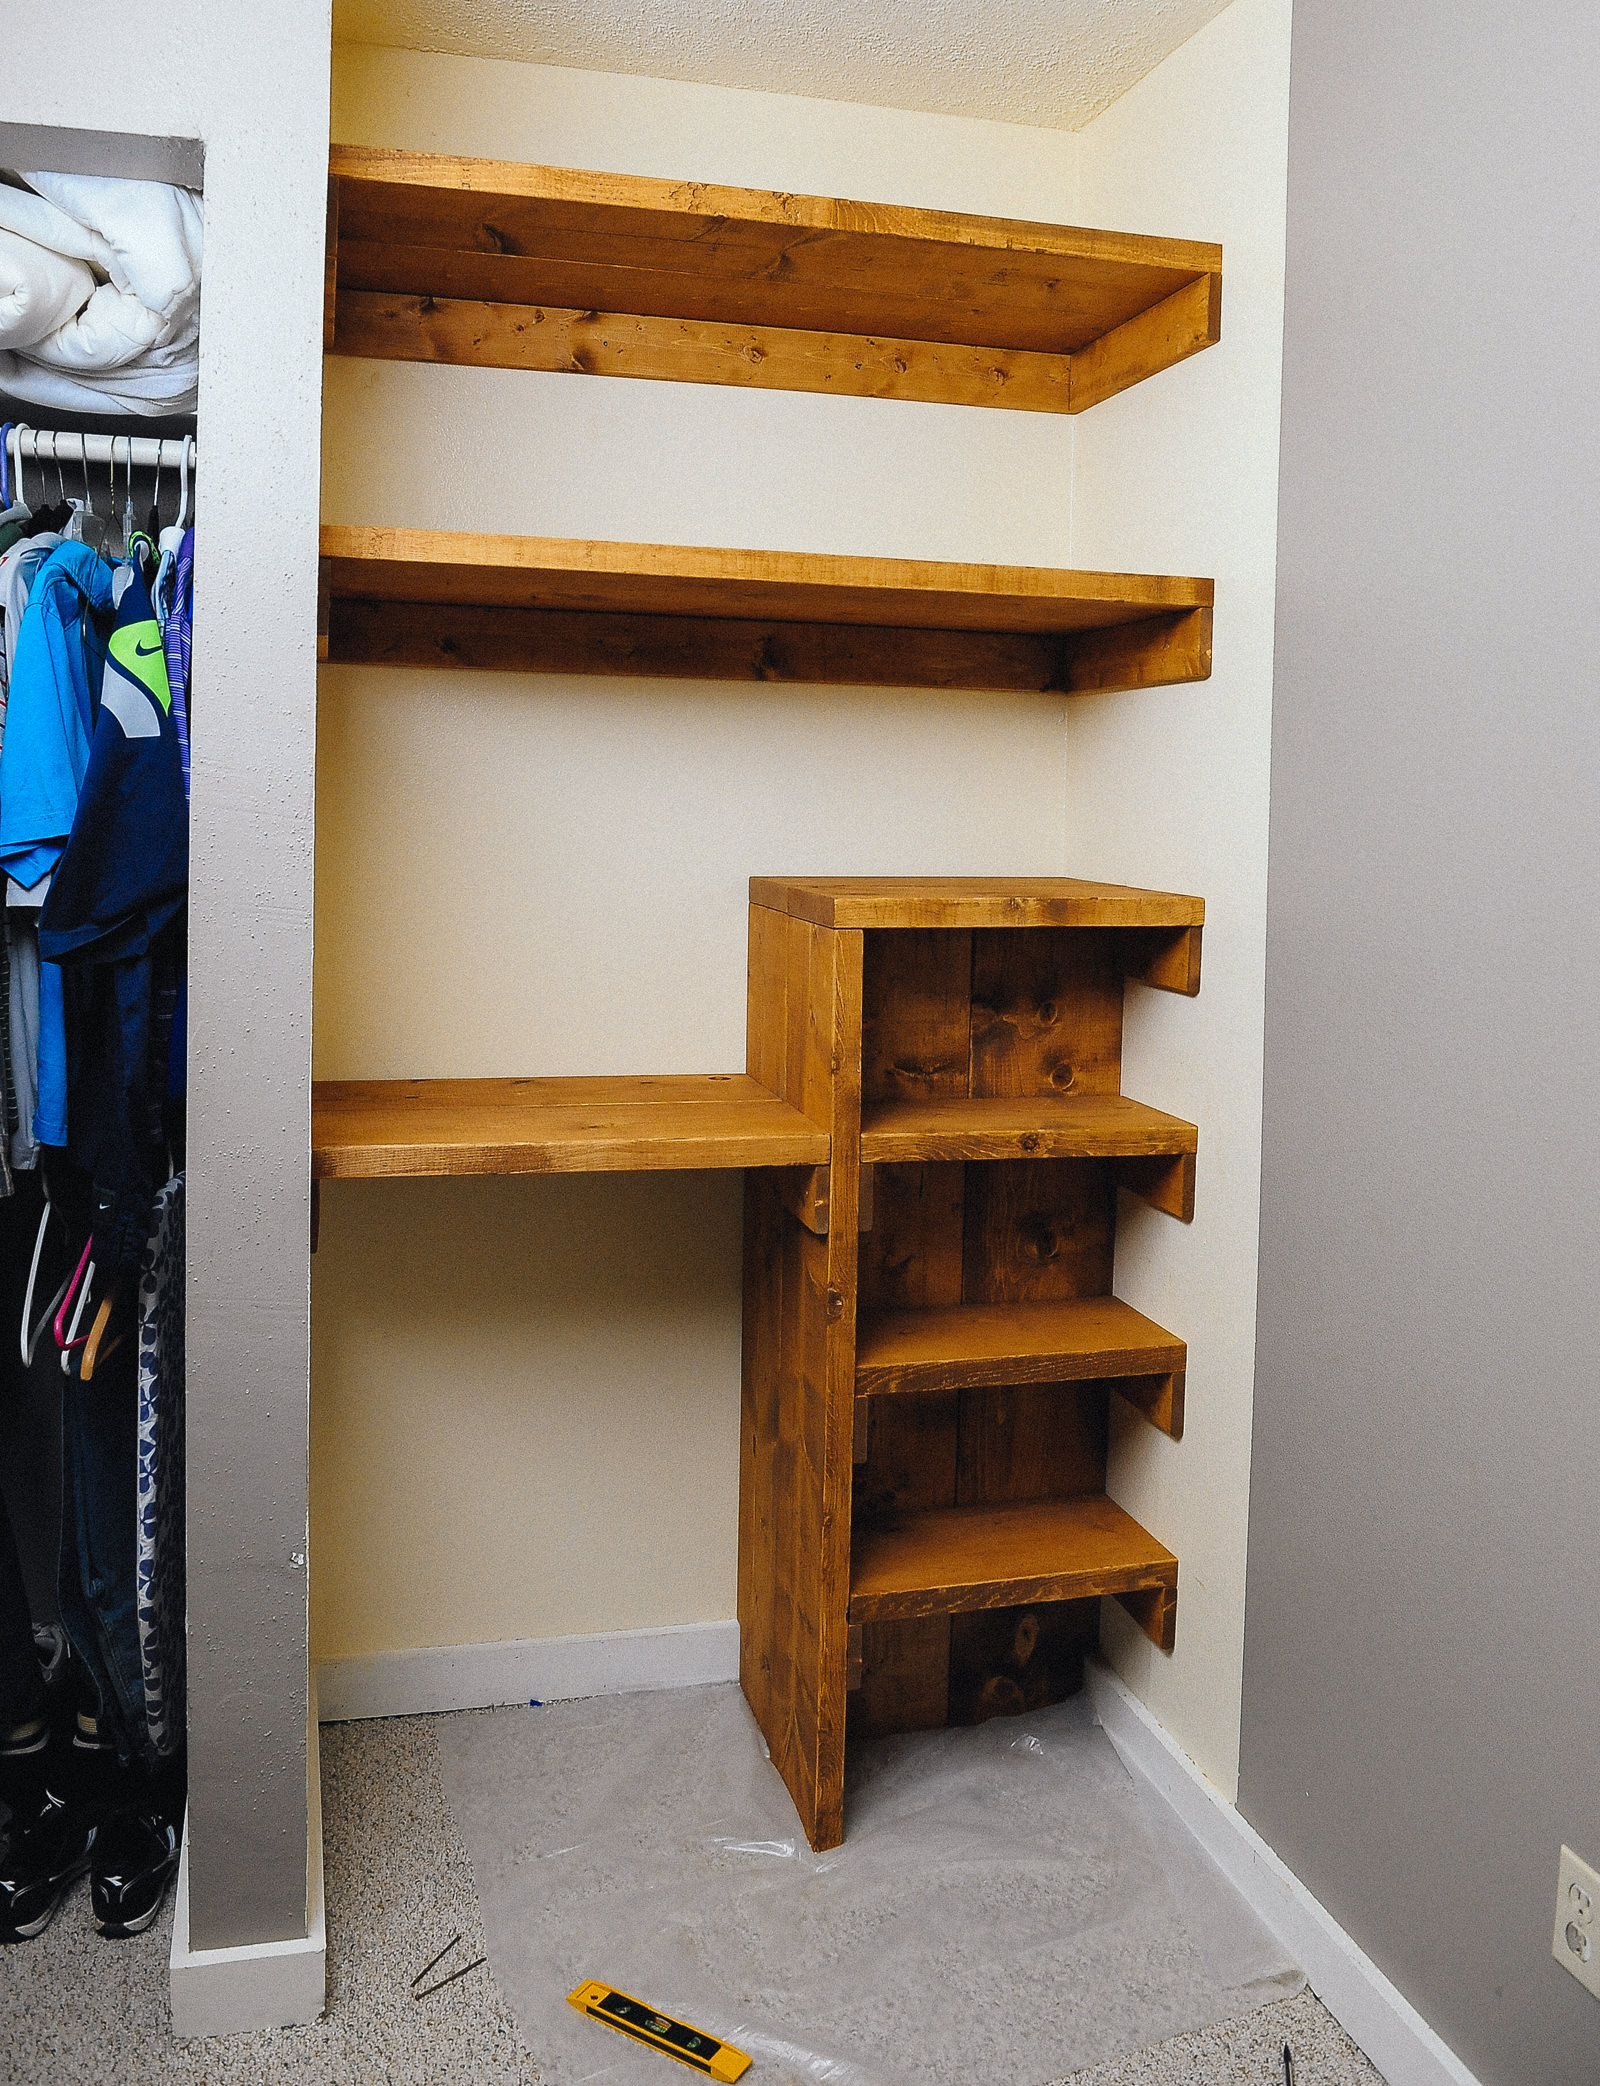 diy office shelves. Closet Makeover With Shelves And Desk Diy Office